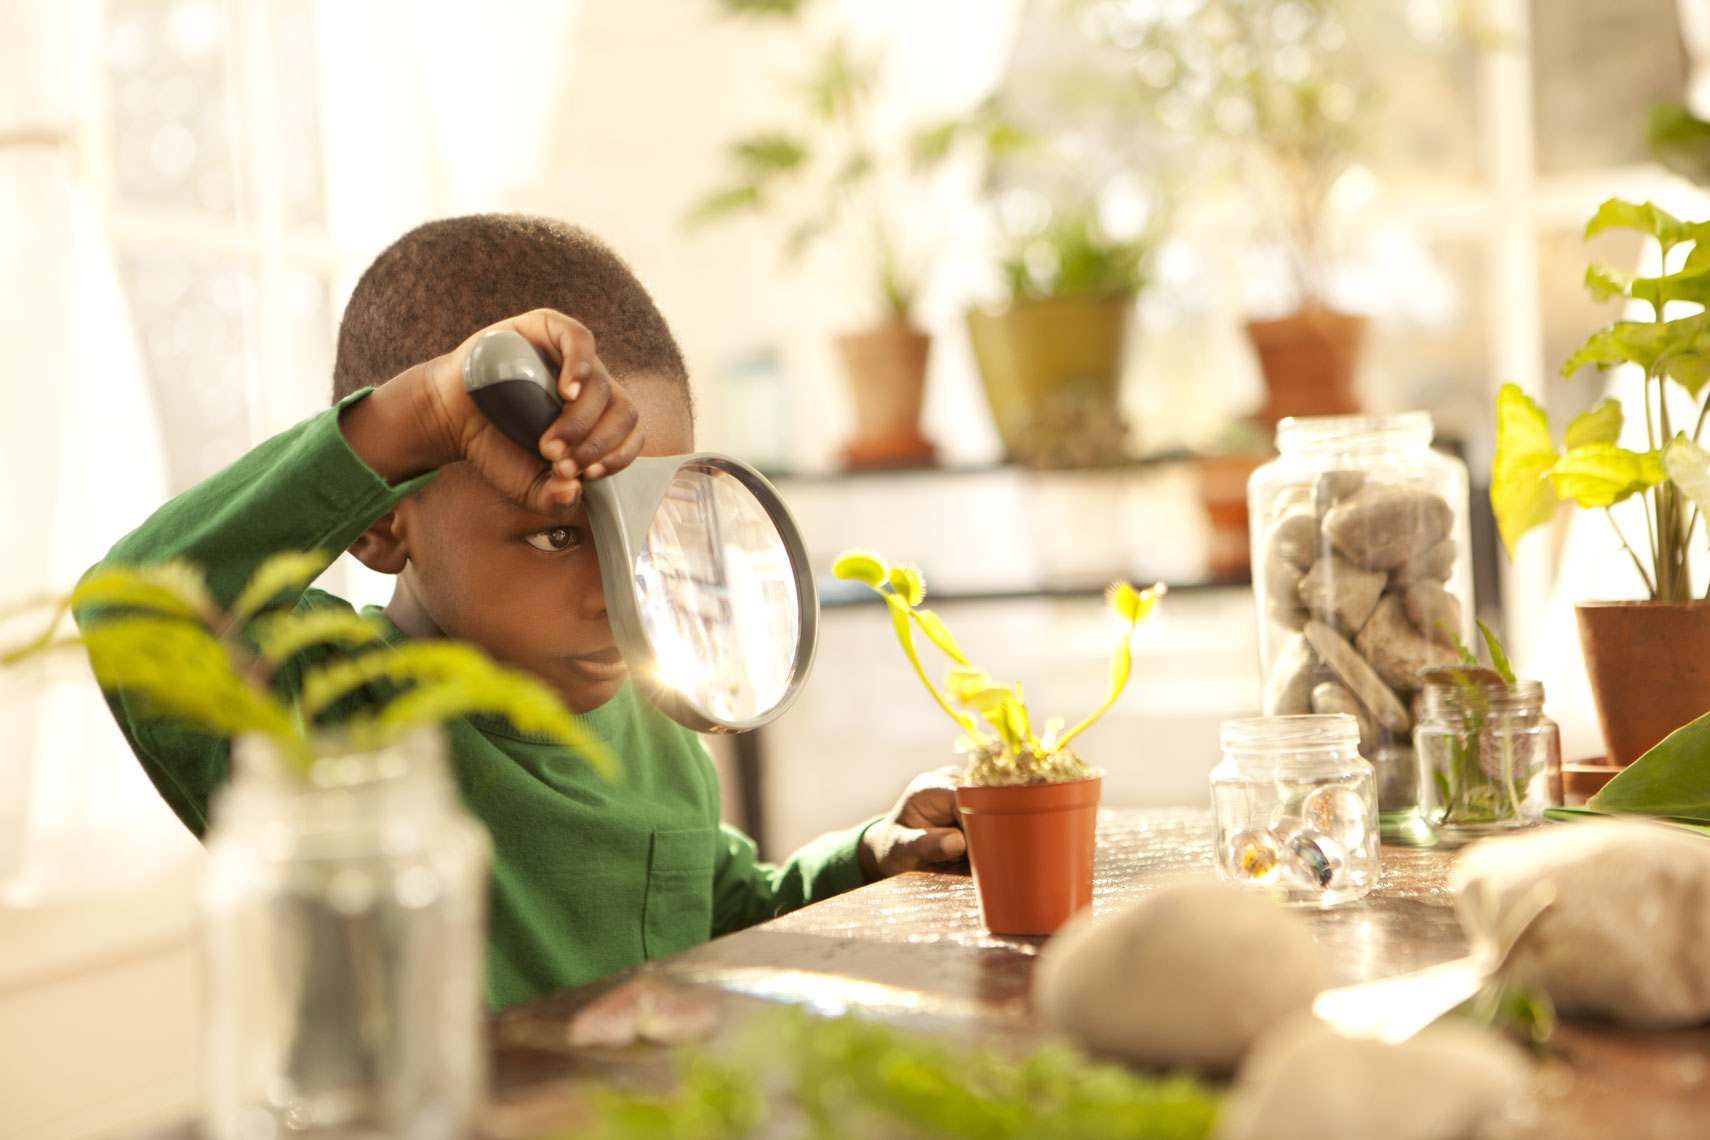 Lifestyle Portait Of African American Boy With Magnifying Glass